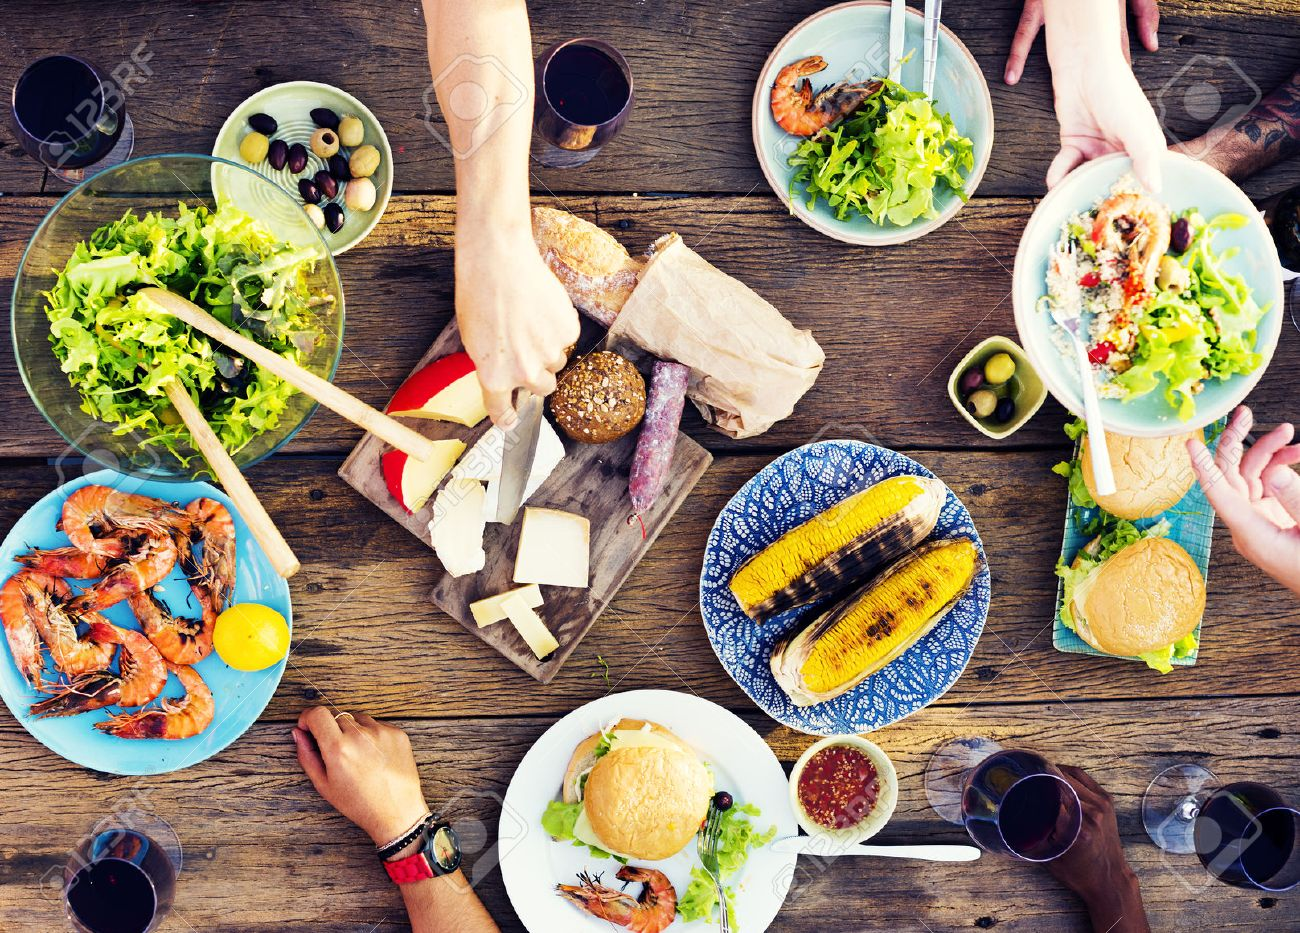 Food Table Celebration Delicious Party Meal Concept - 47062607